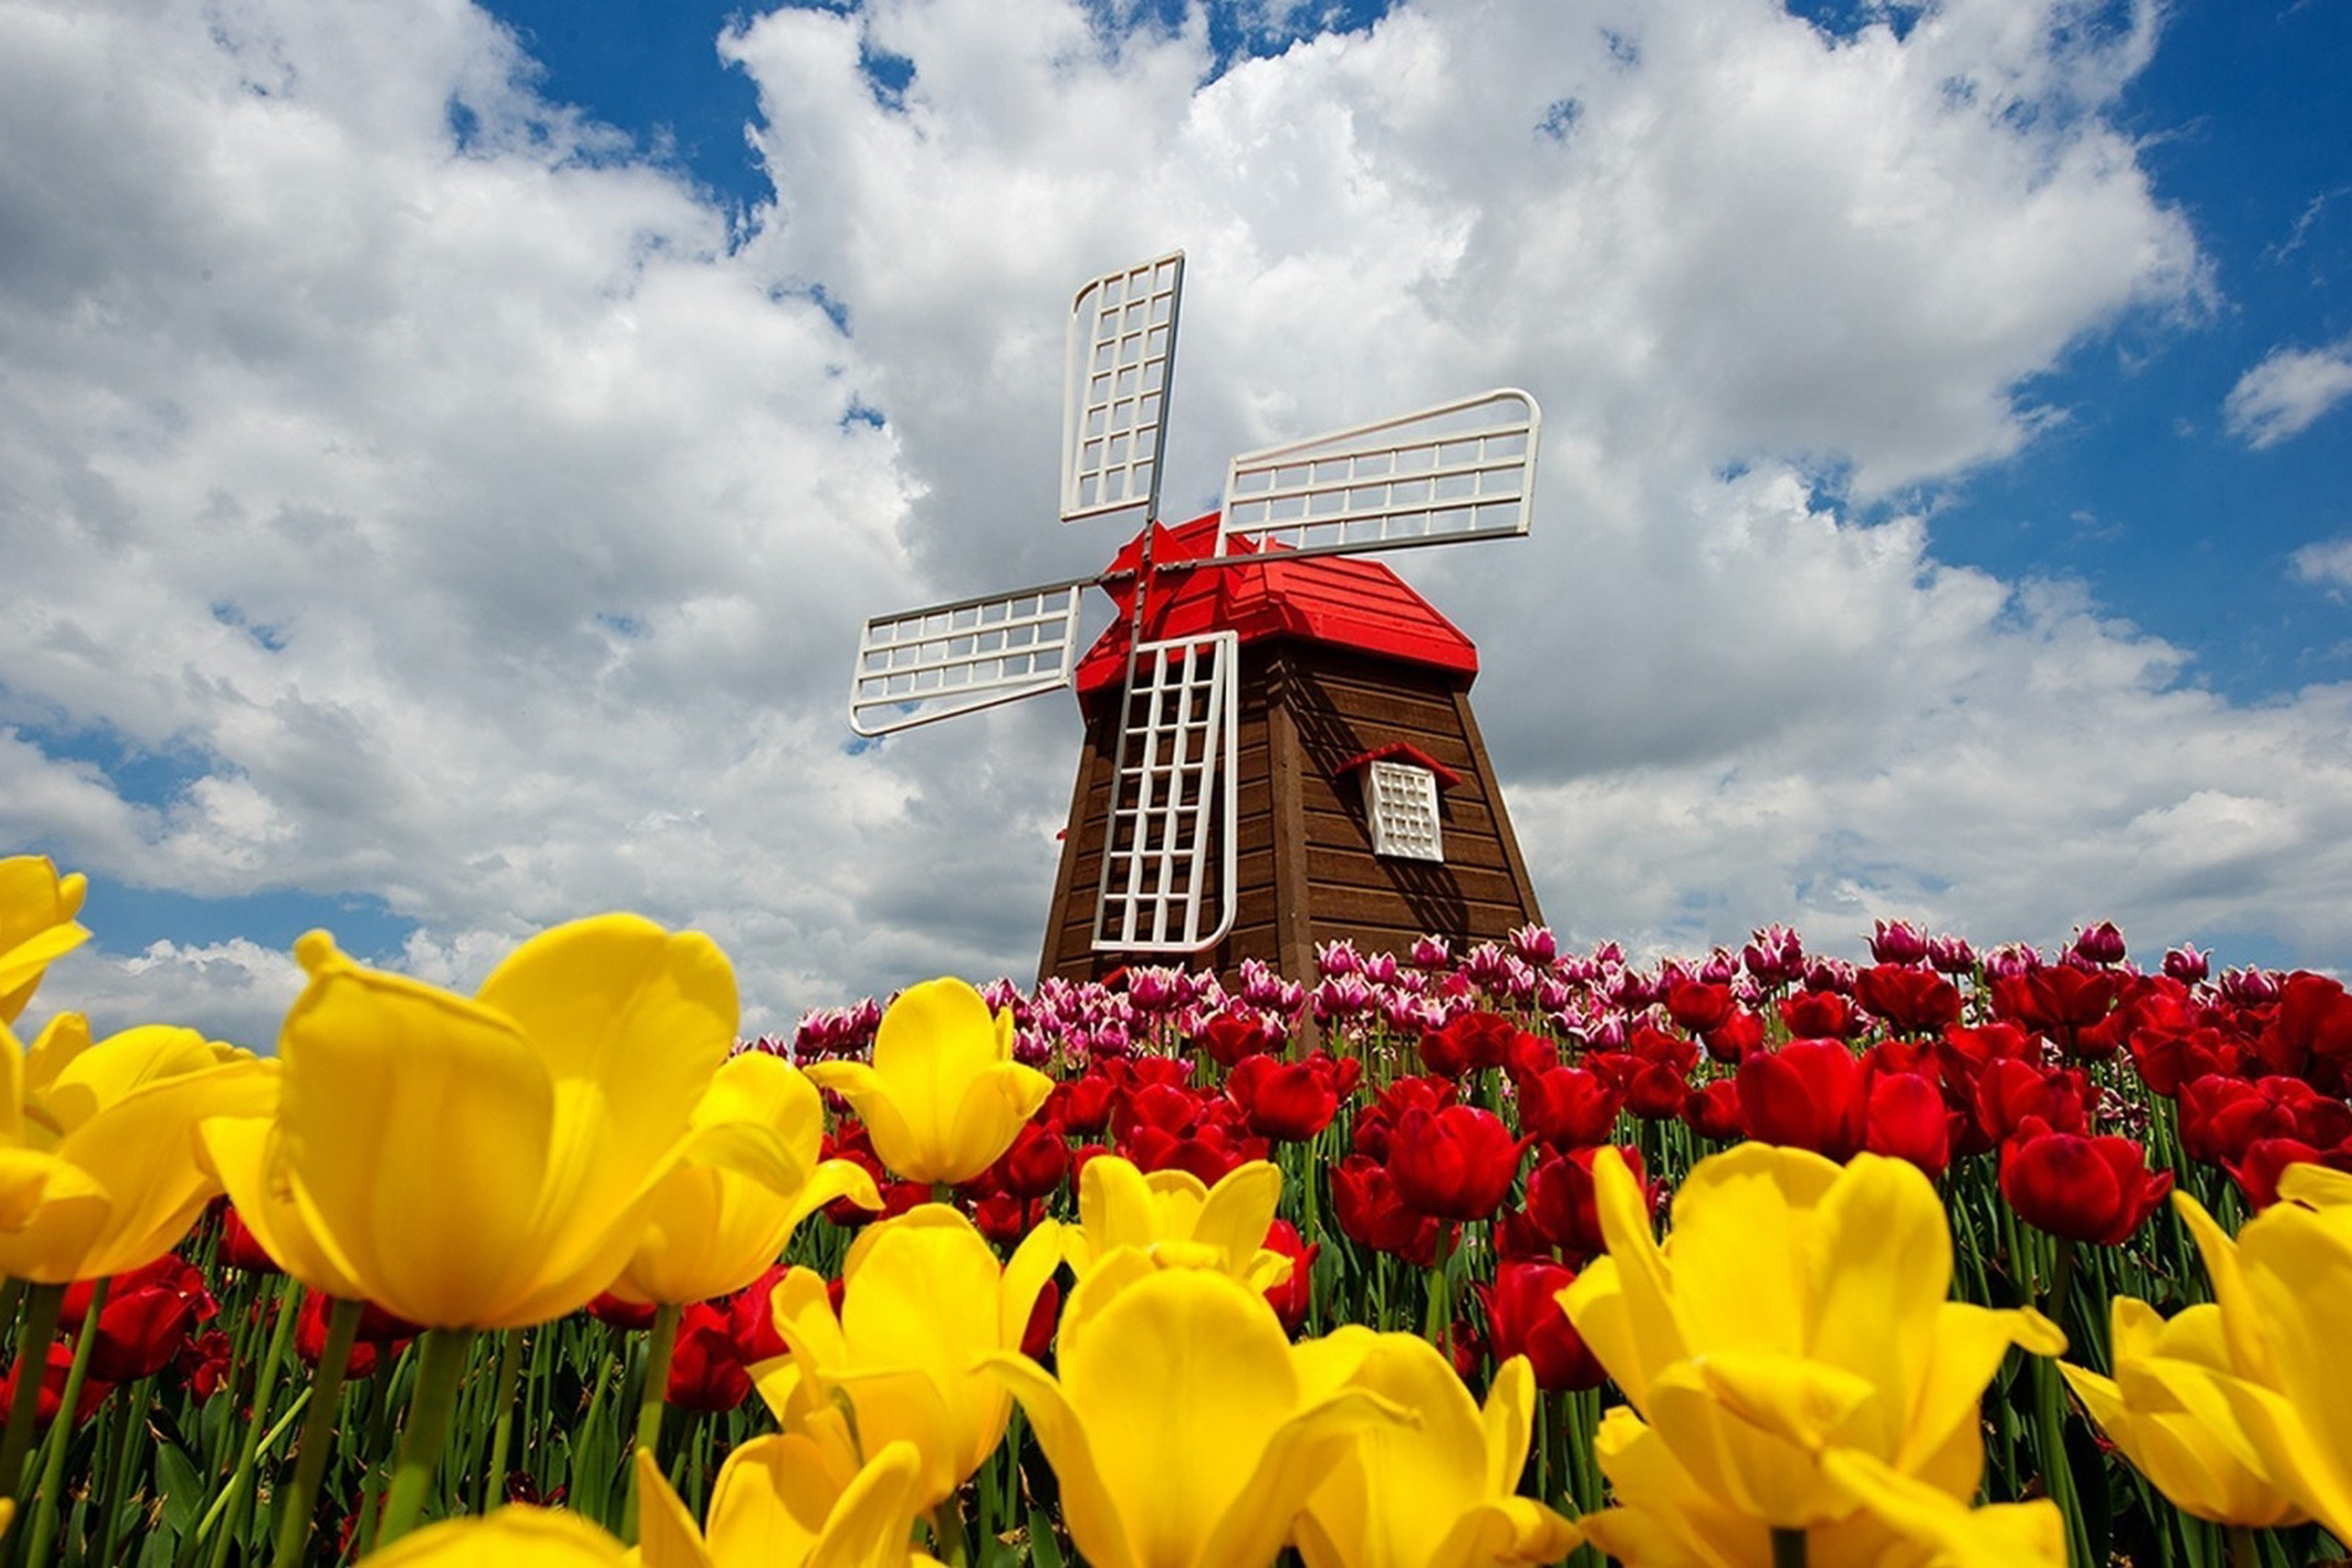 colorful tulips field windmill nature wallpaper KC756 living room home wall  modern art decor wood frame